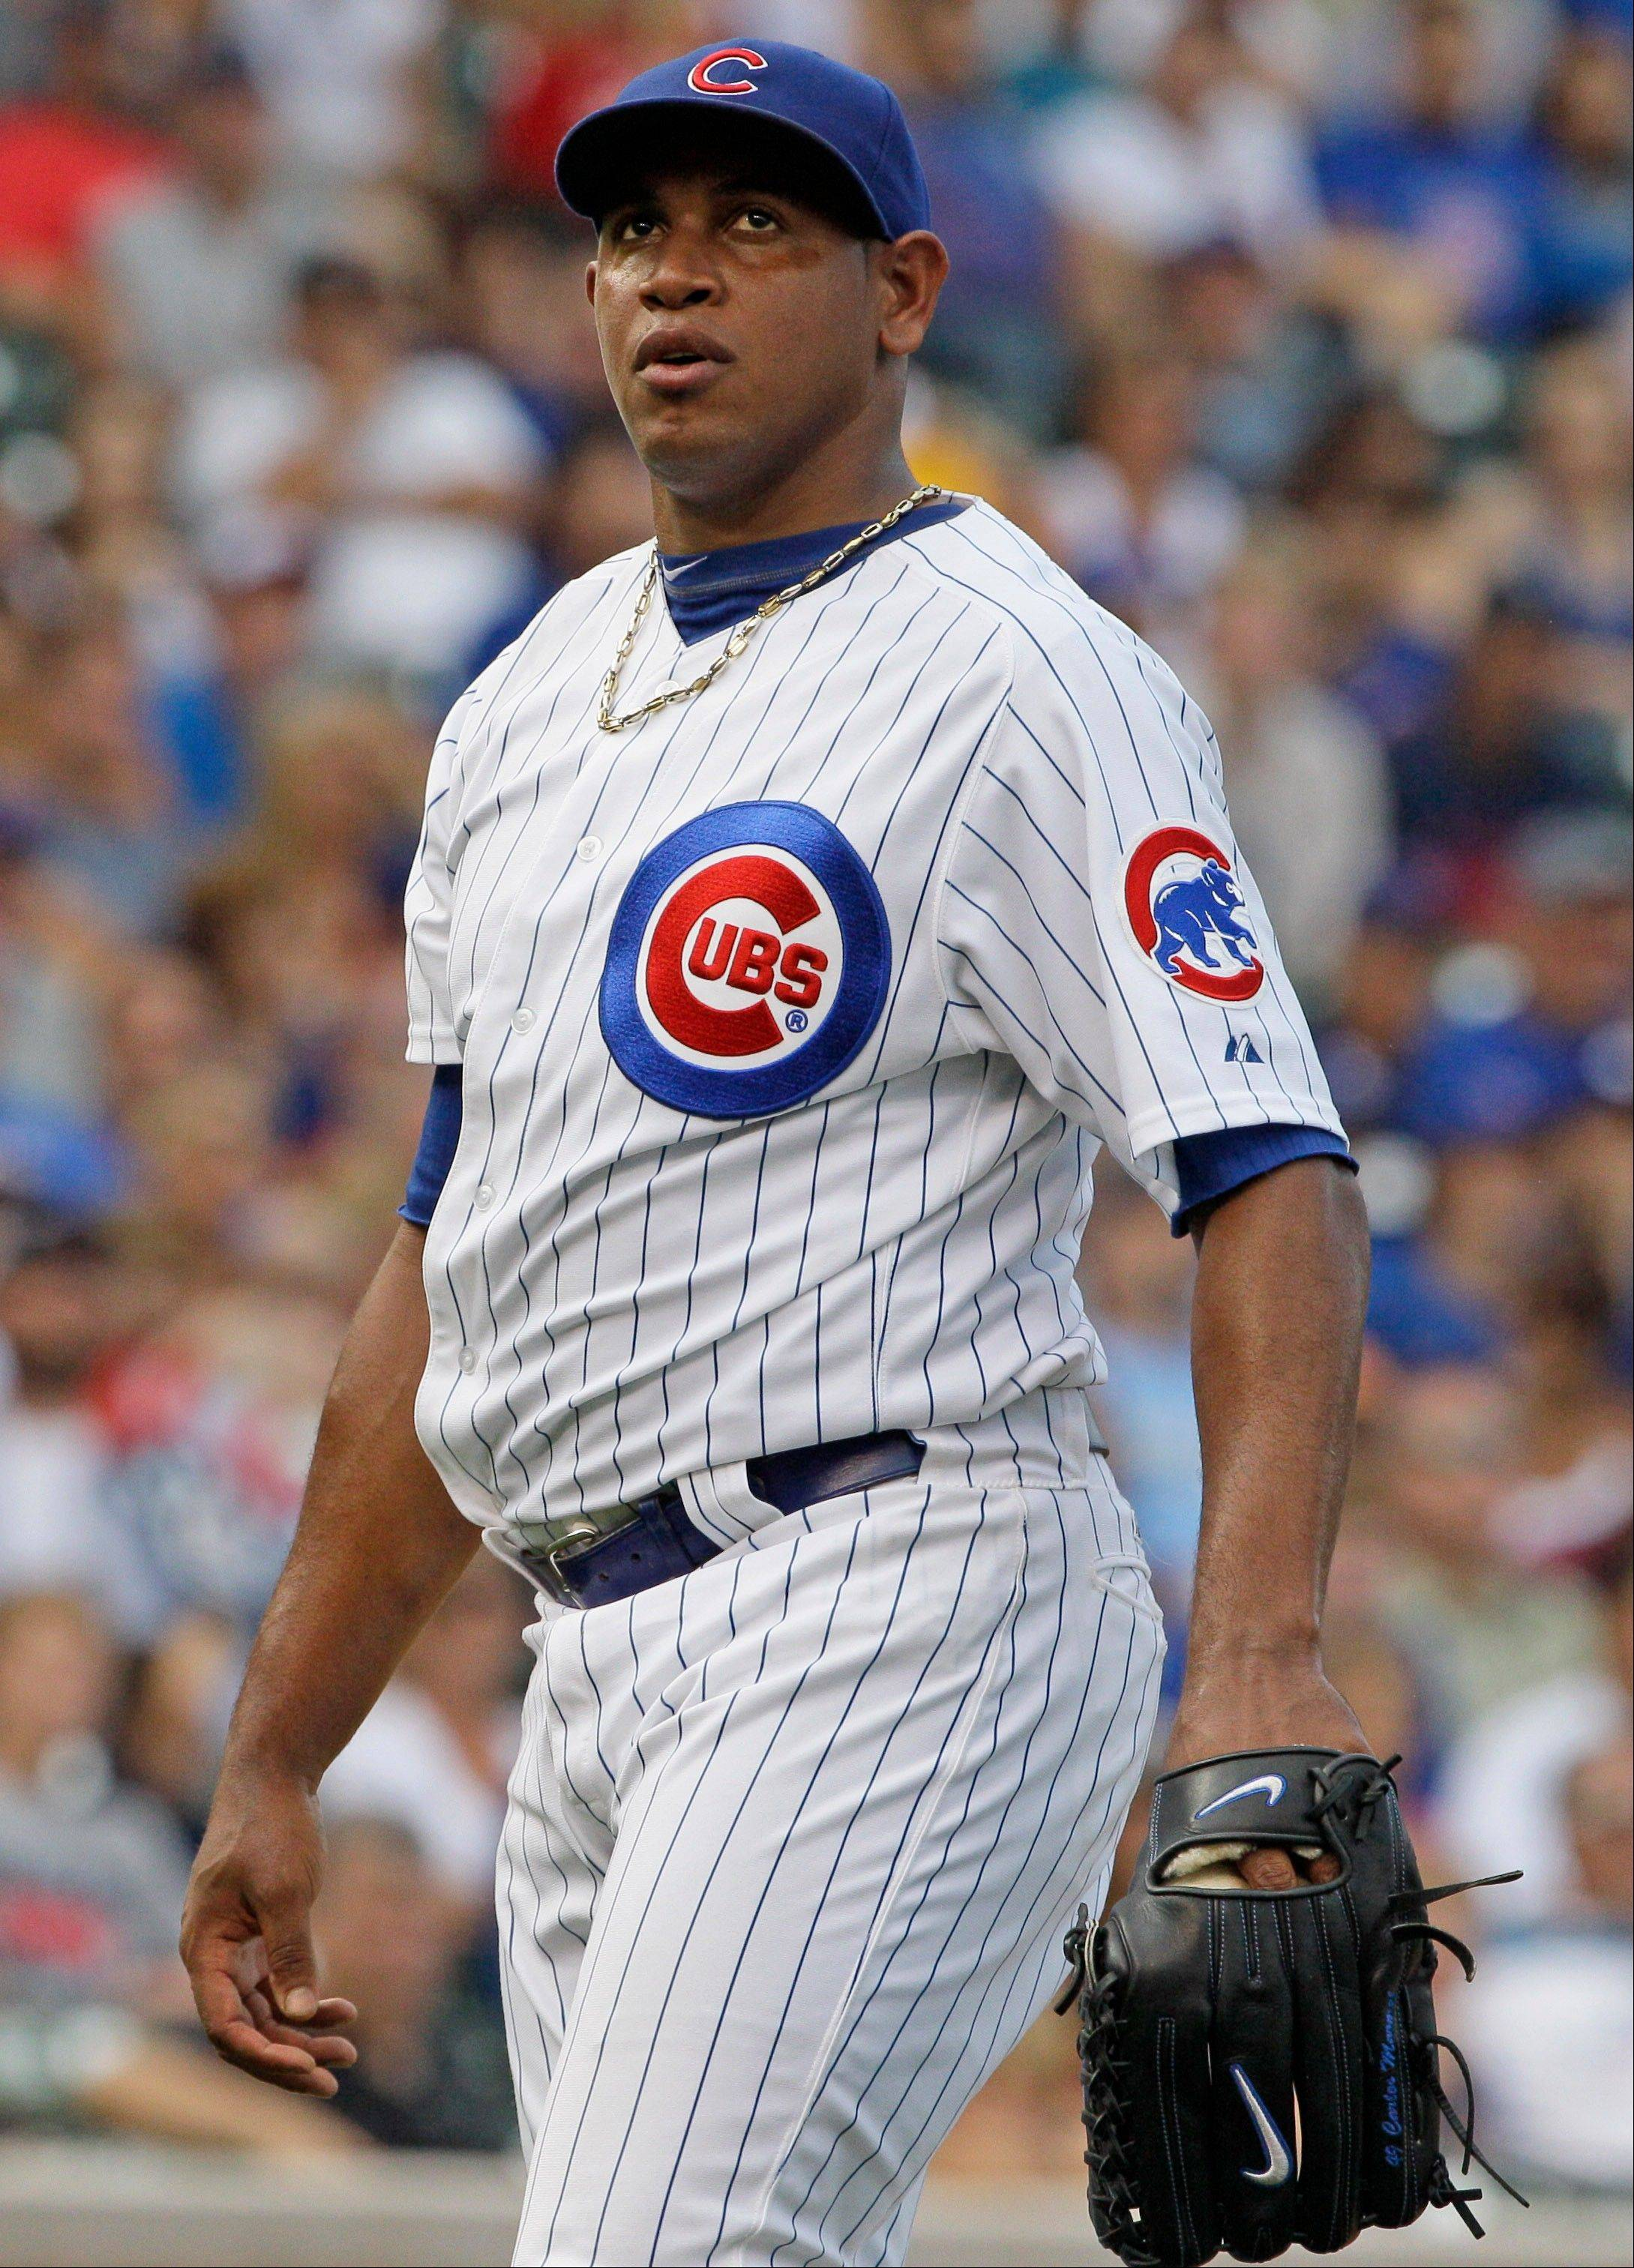 Cubs relief pitcher Carlos Marmol gave up the winning runs Sunday against the San Francisco Giants.